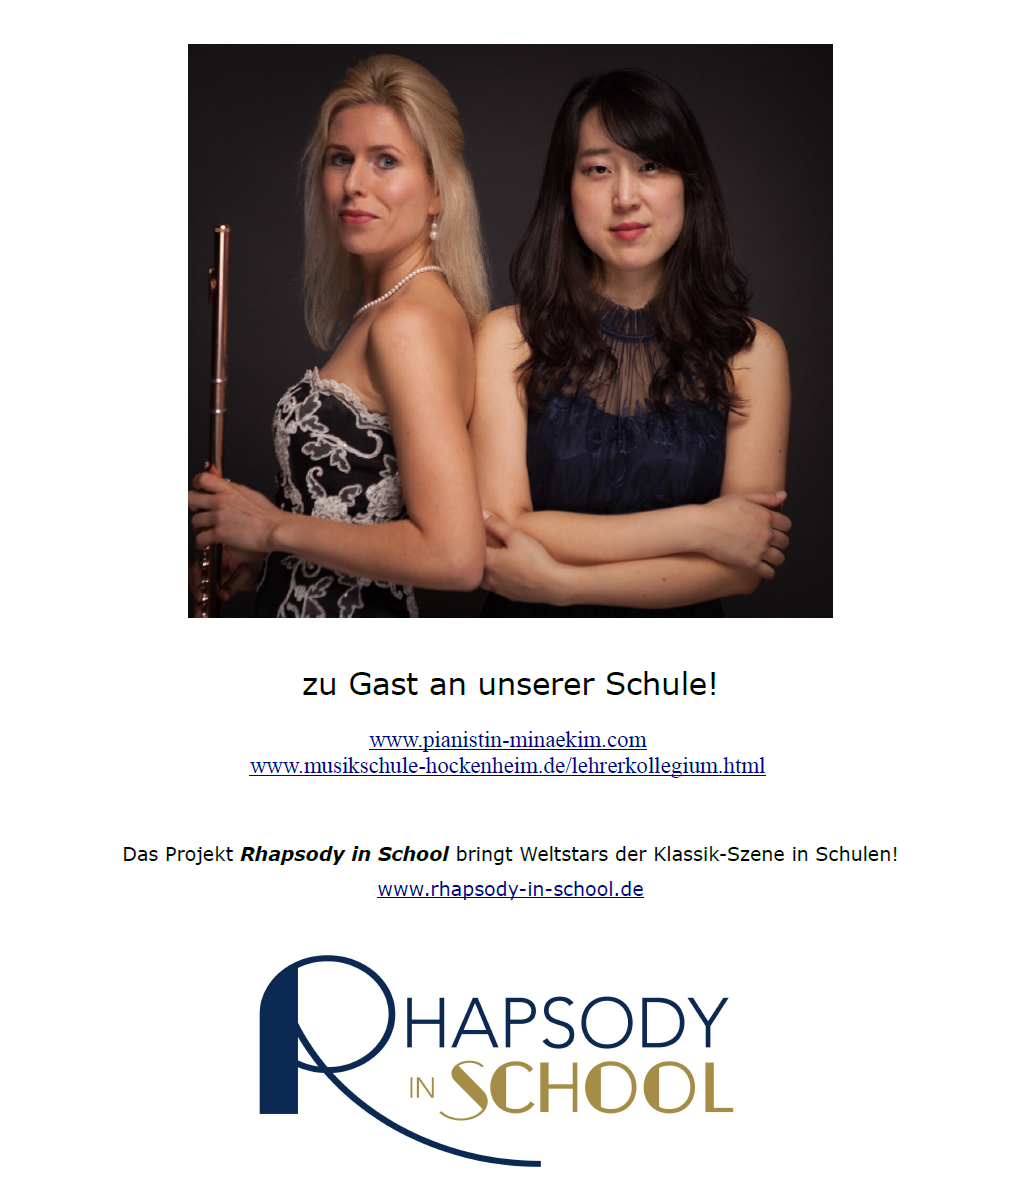 Rhapsody in SAchool